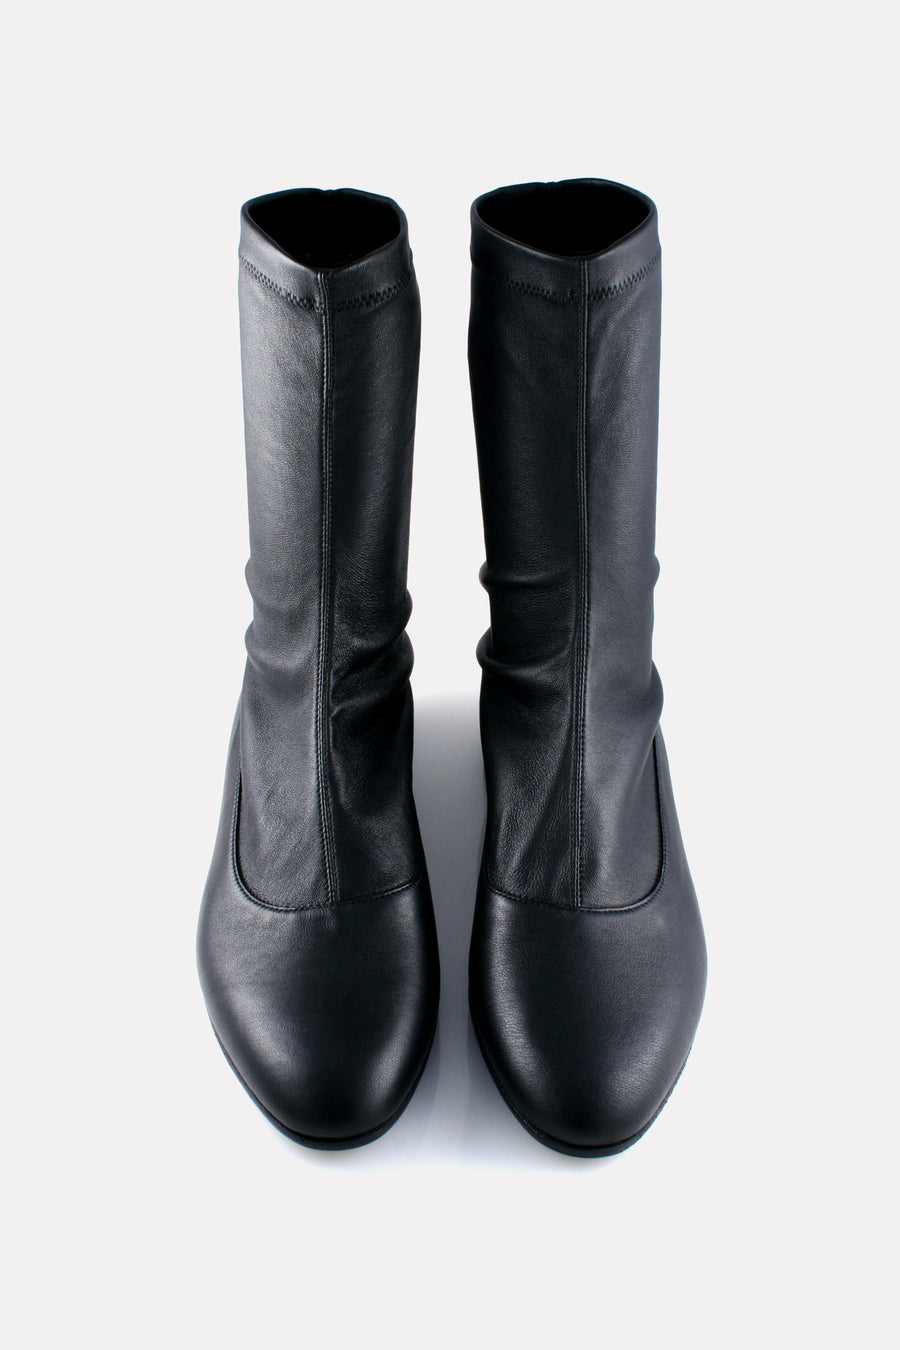 Stretch Stocking Boot Black.